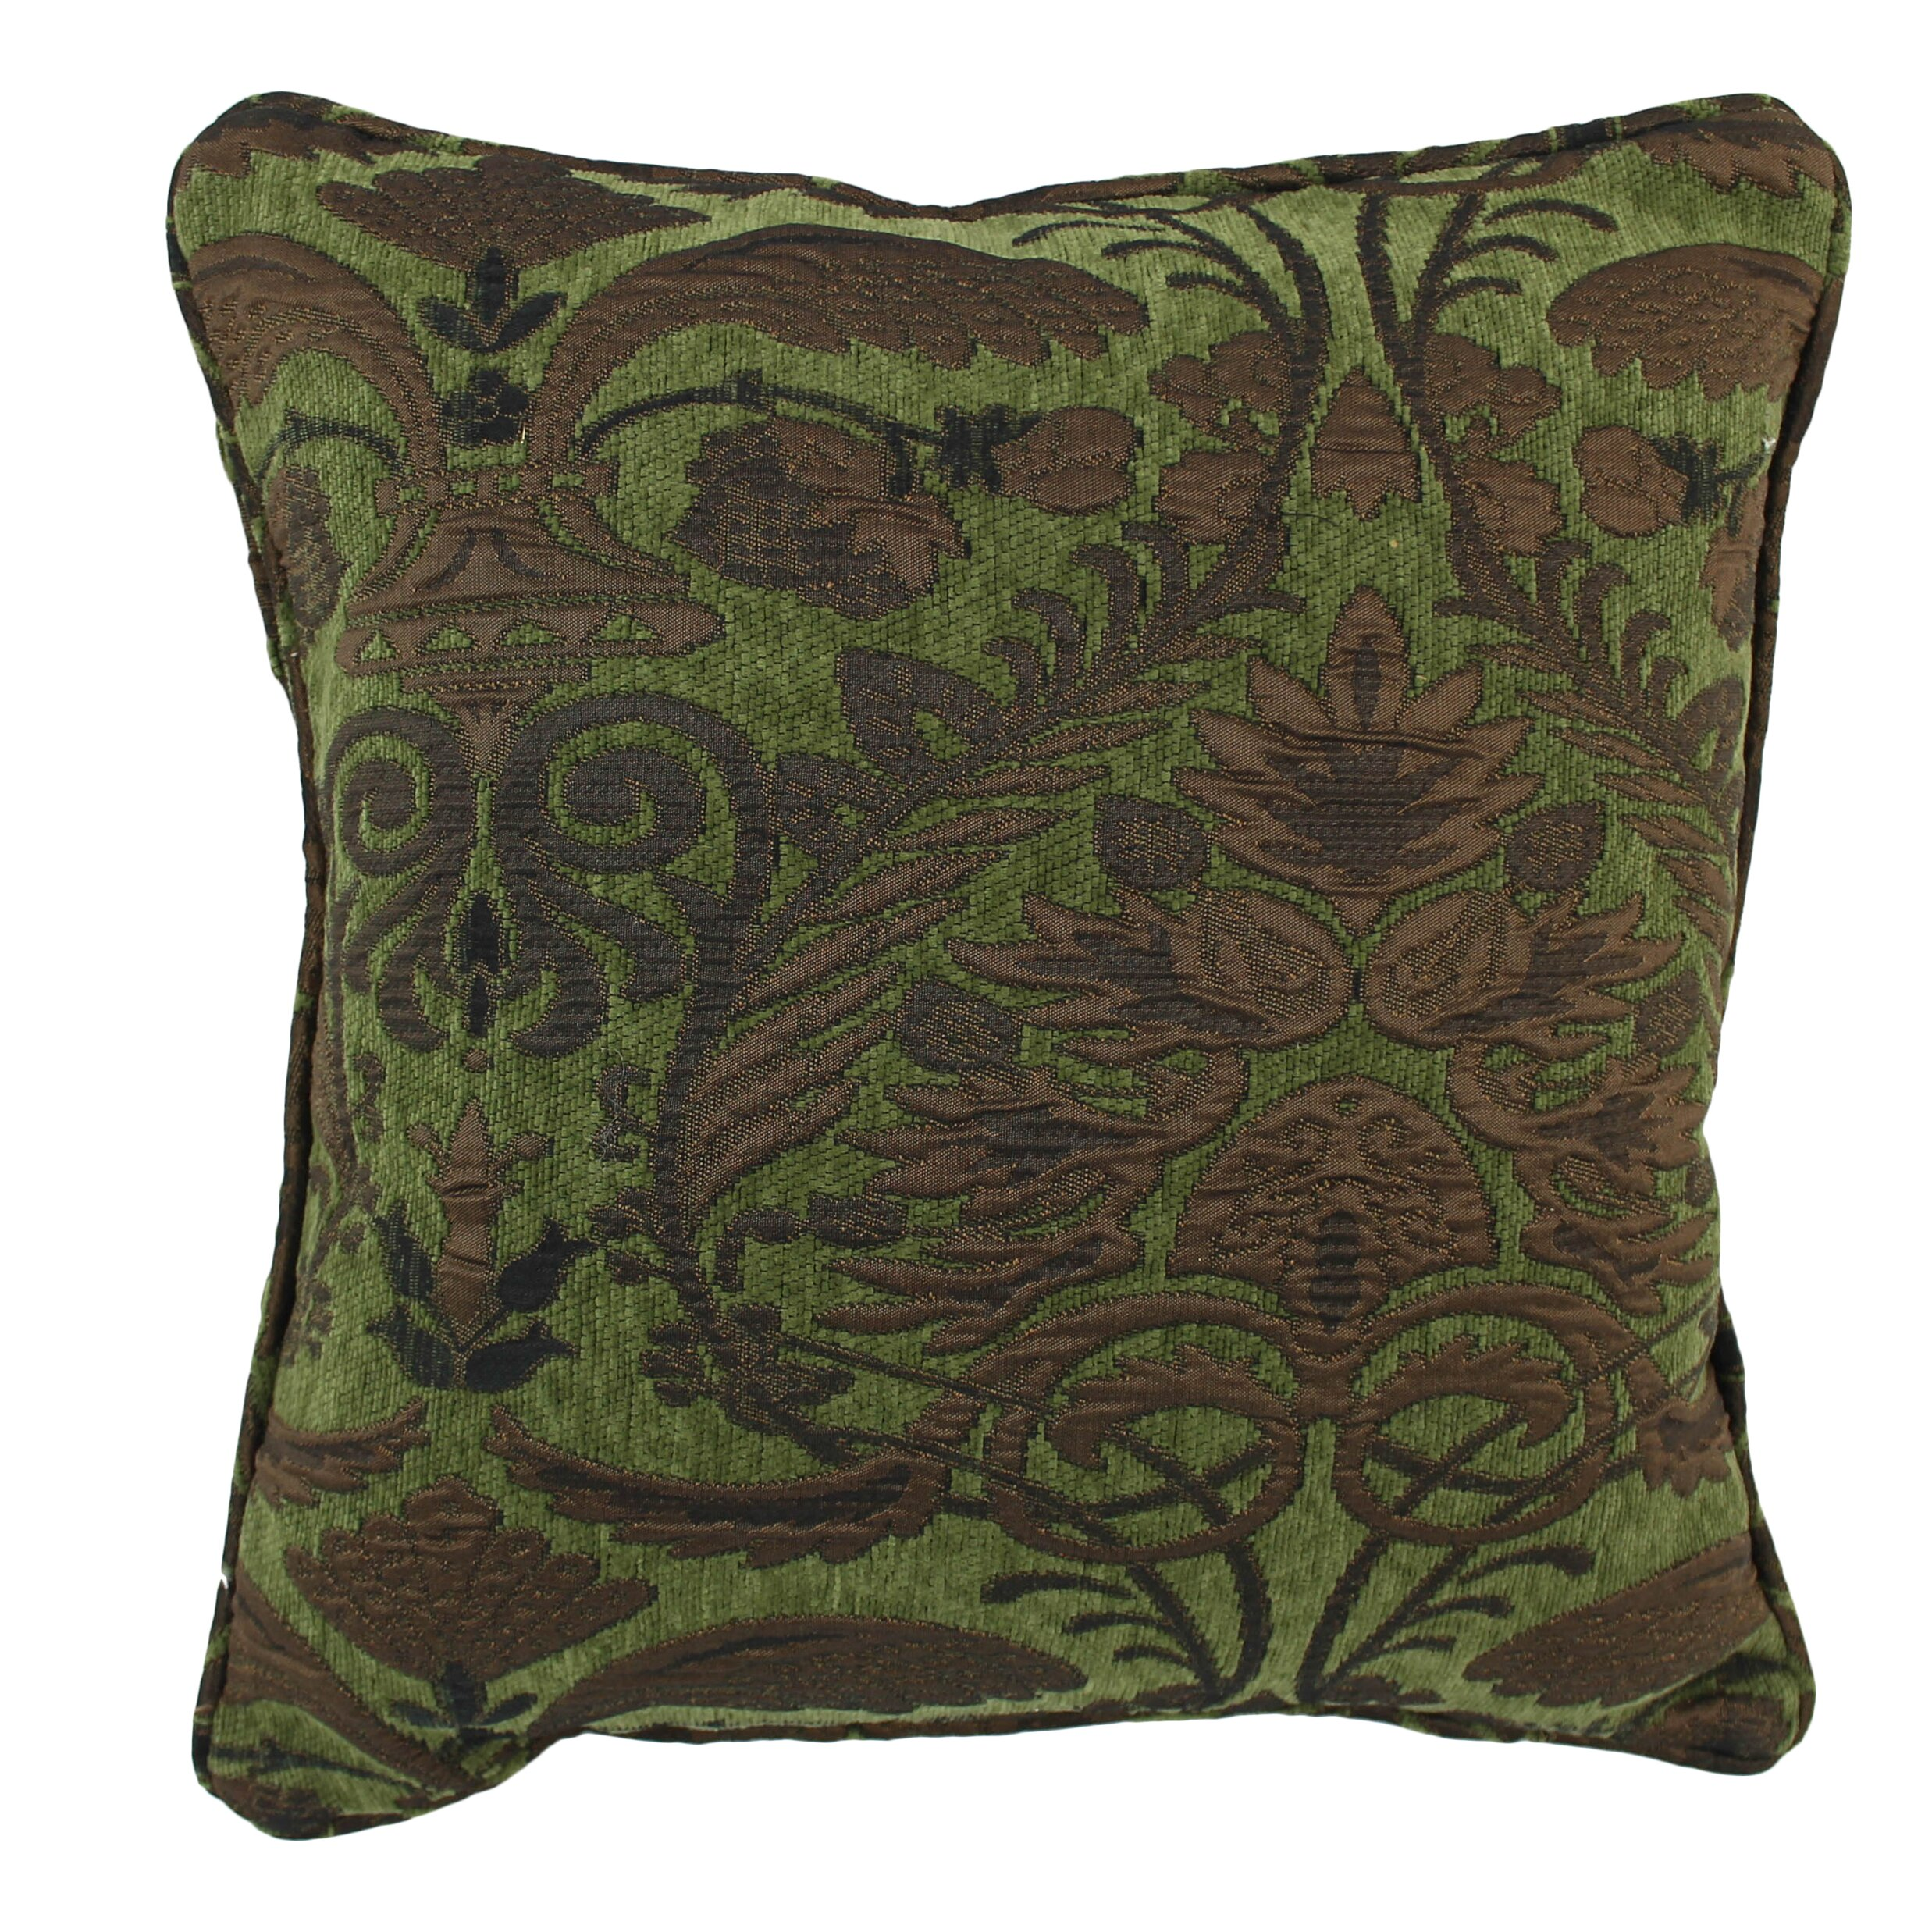 Blazing Needles 18-inch Corded Green Damask Jacquard Chenille Throw Pillow Wayfair